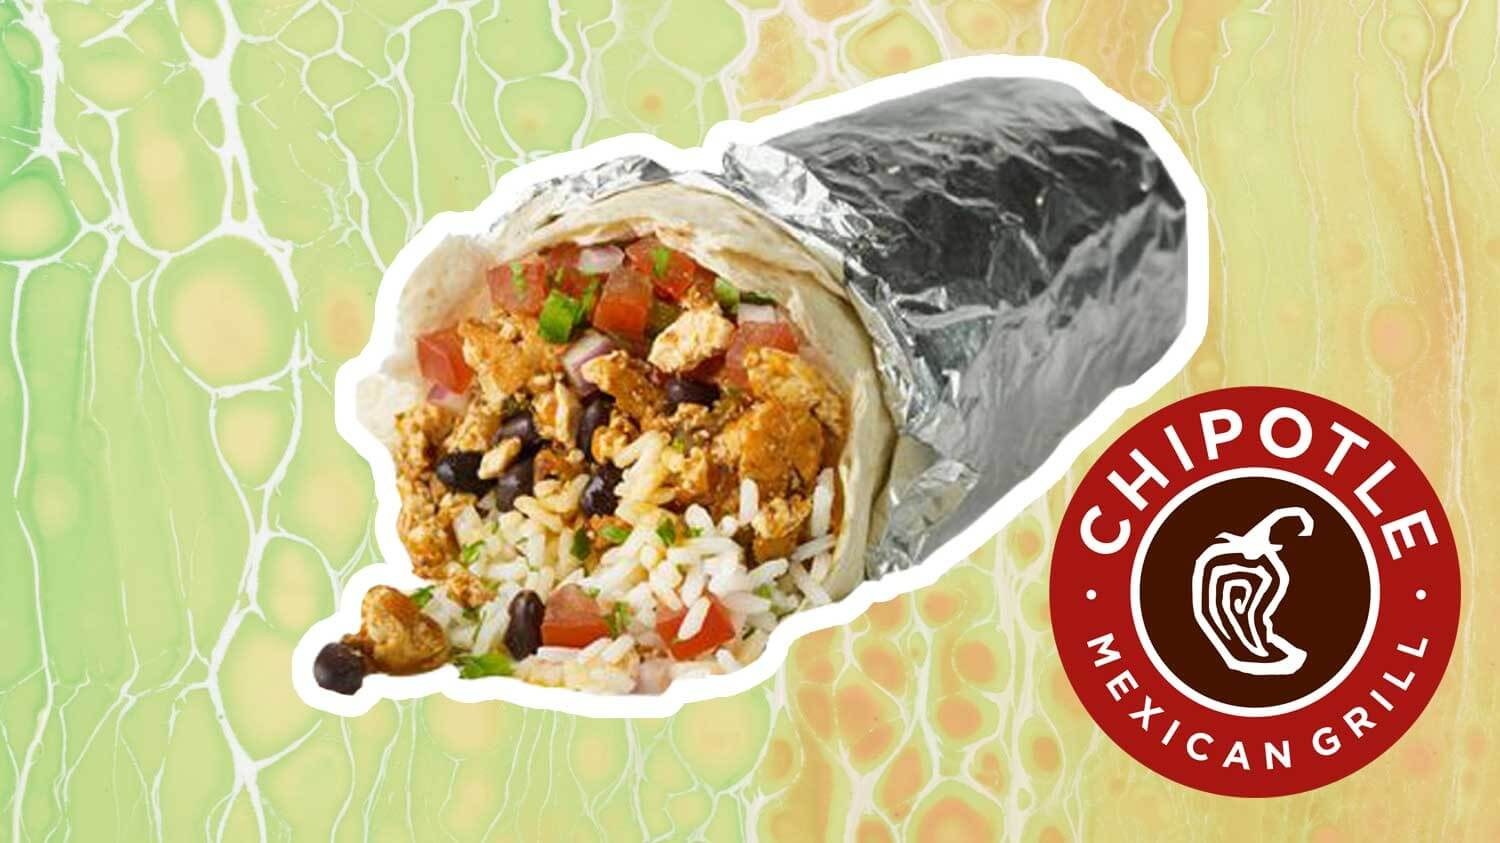 Chipotle Wants Everyone to Go Meatless on Mondays